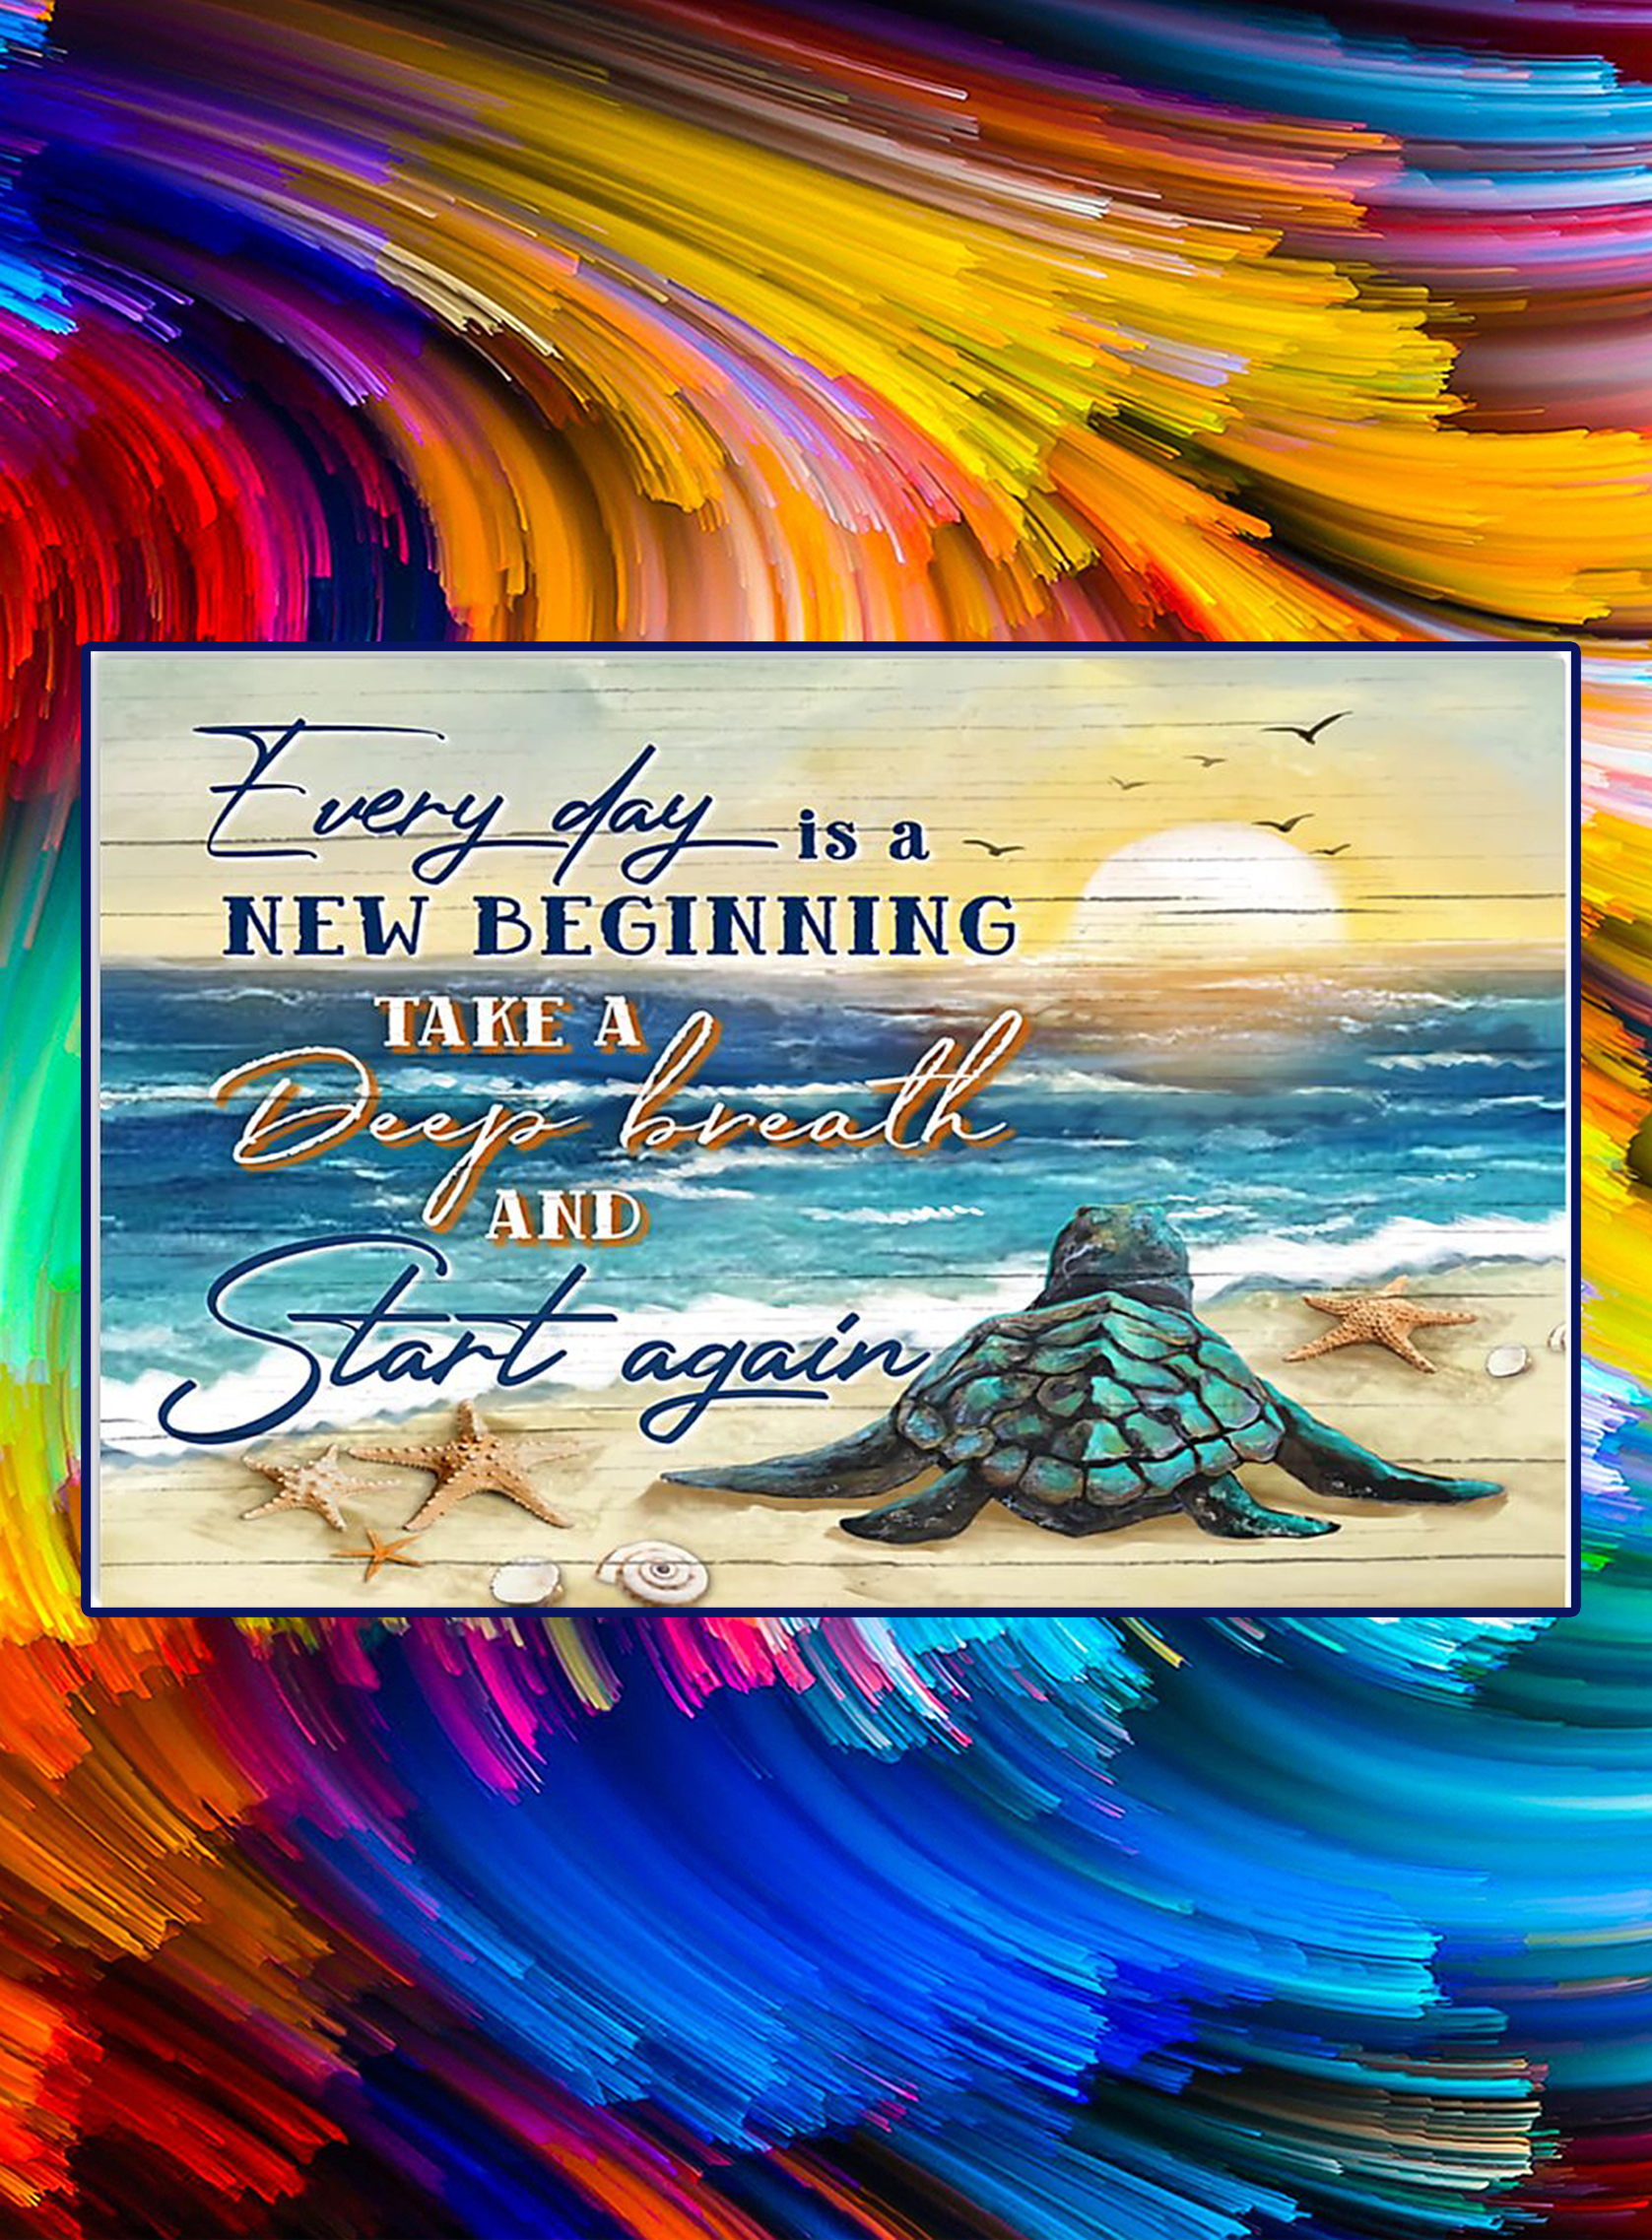 Turtle every day is a new beginning take a deep breath and start again poster - A1